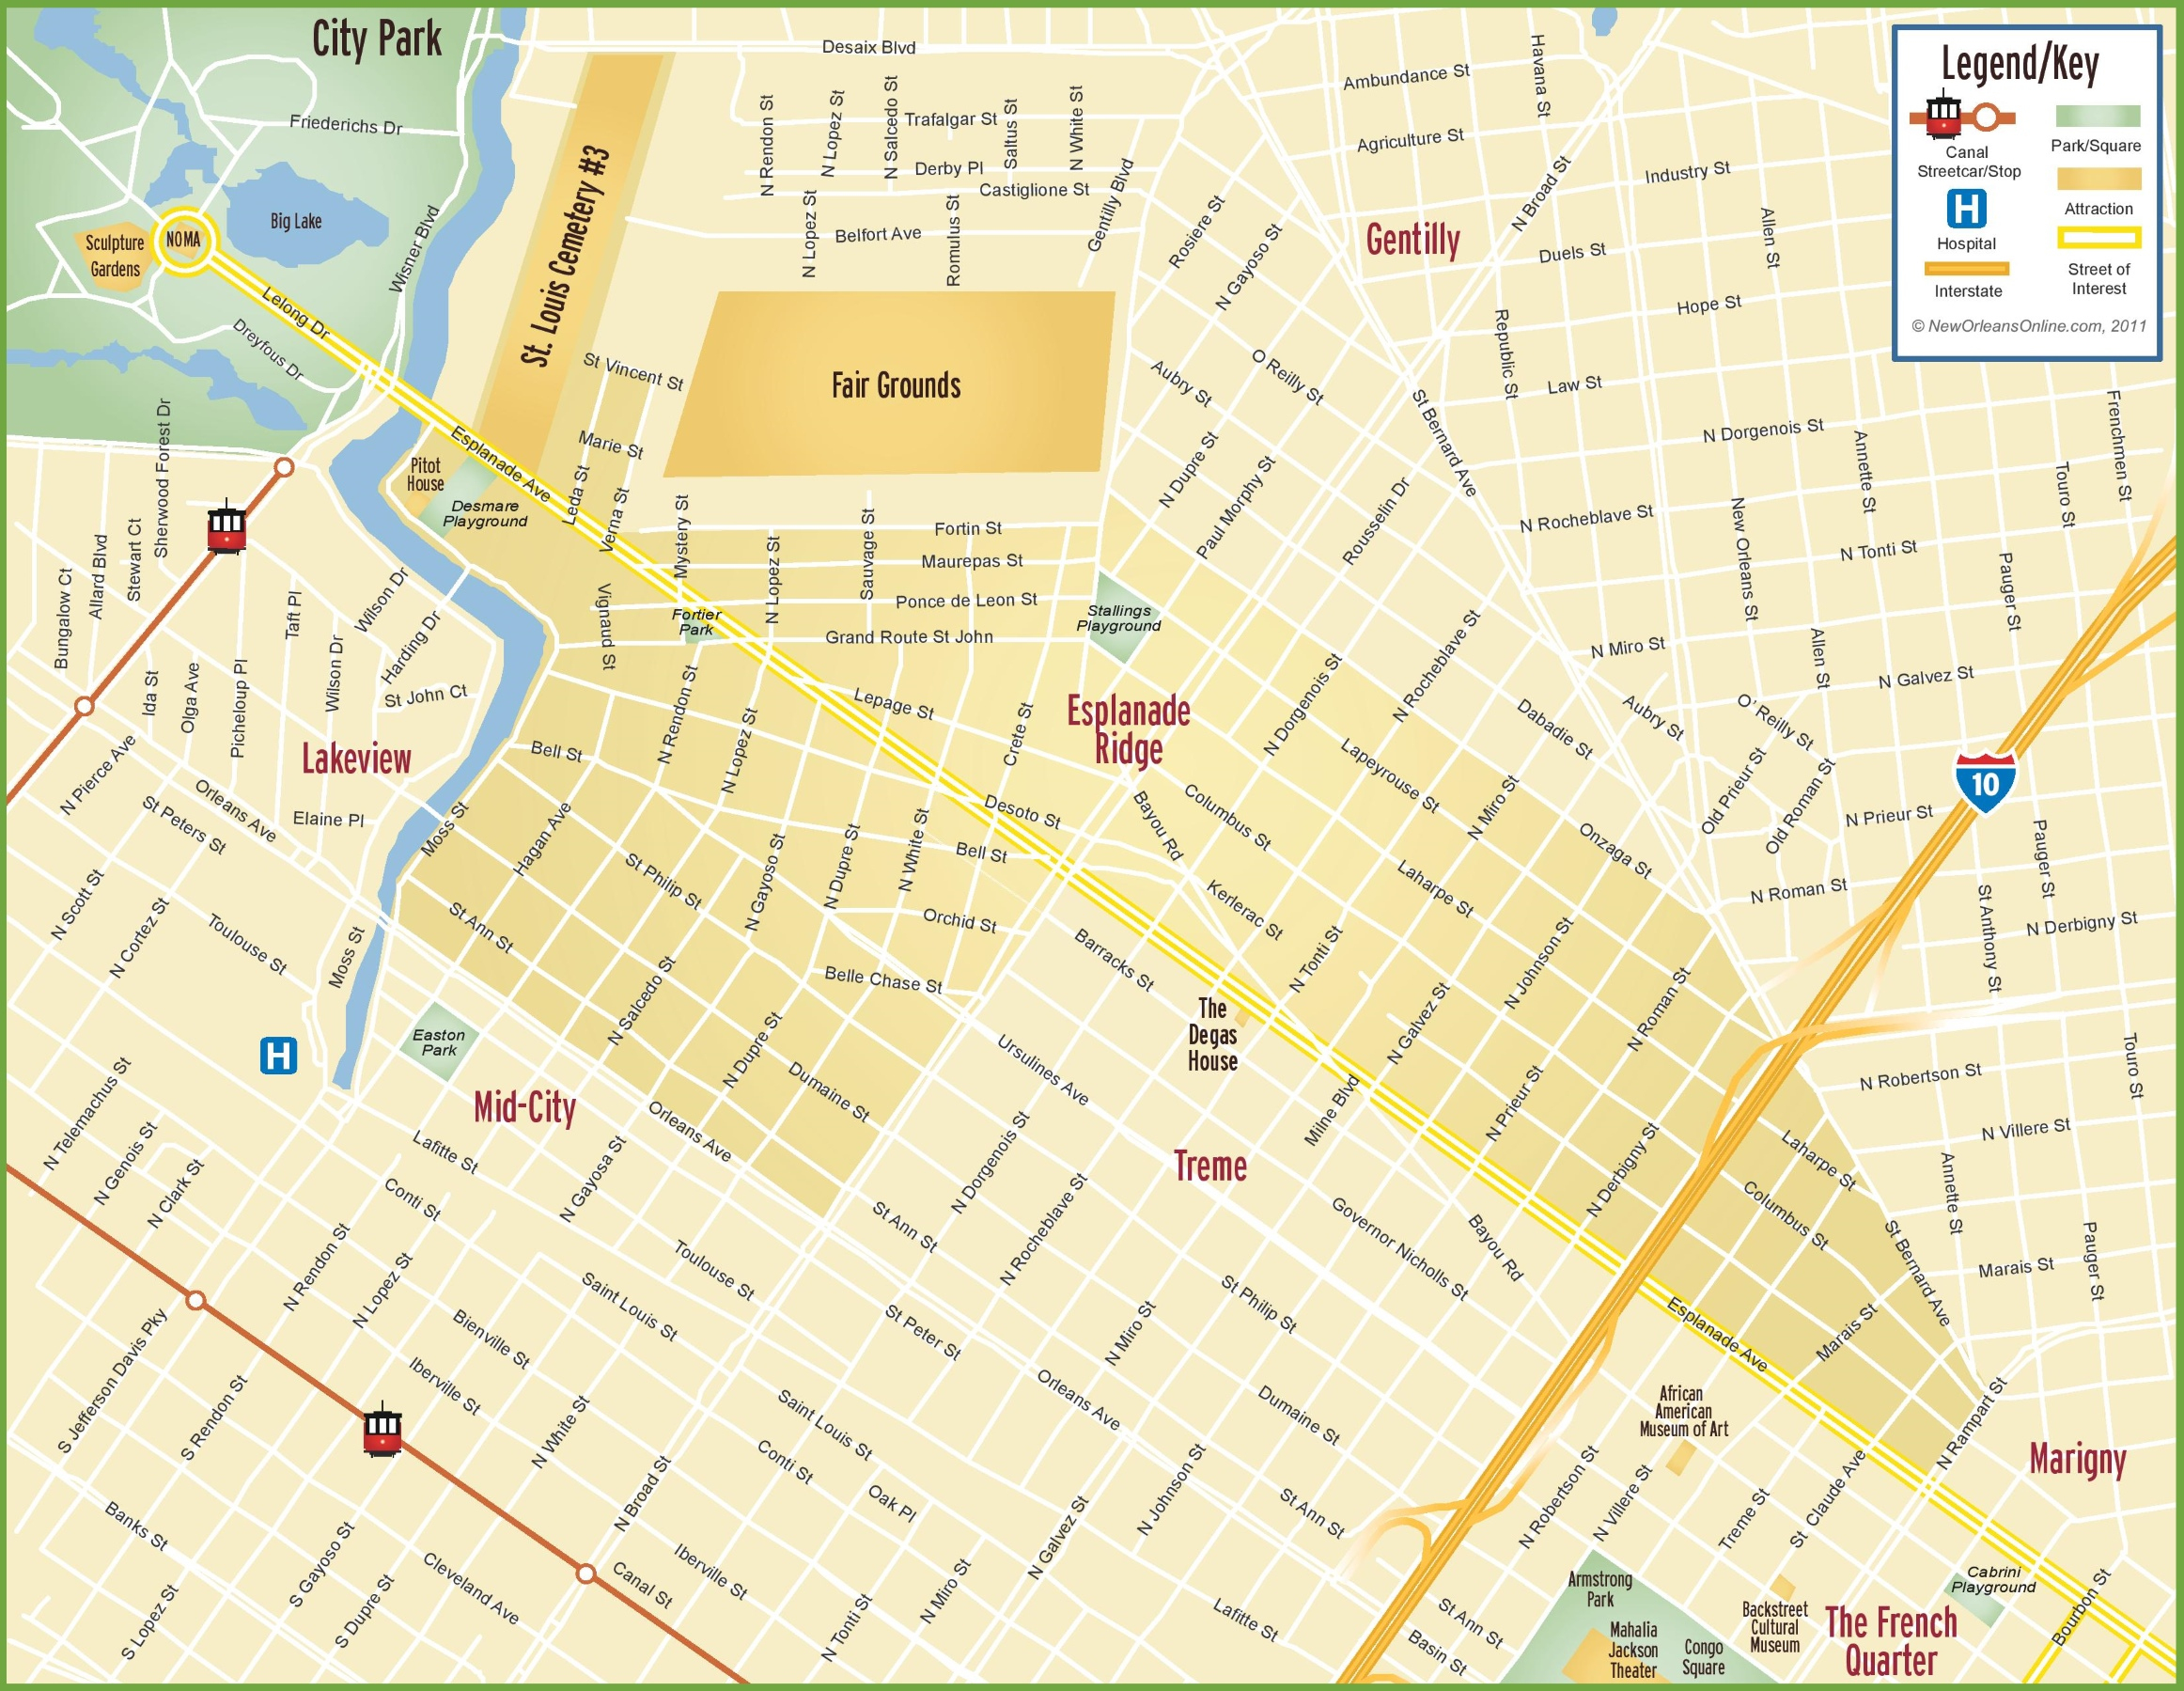 New Orleans Maps | Louisiana, U.s. | Maps Of New Orleans - Printable Walking Map Of New Orleans